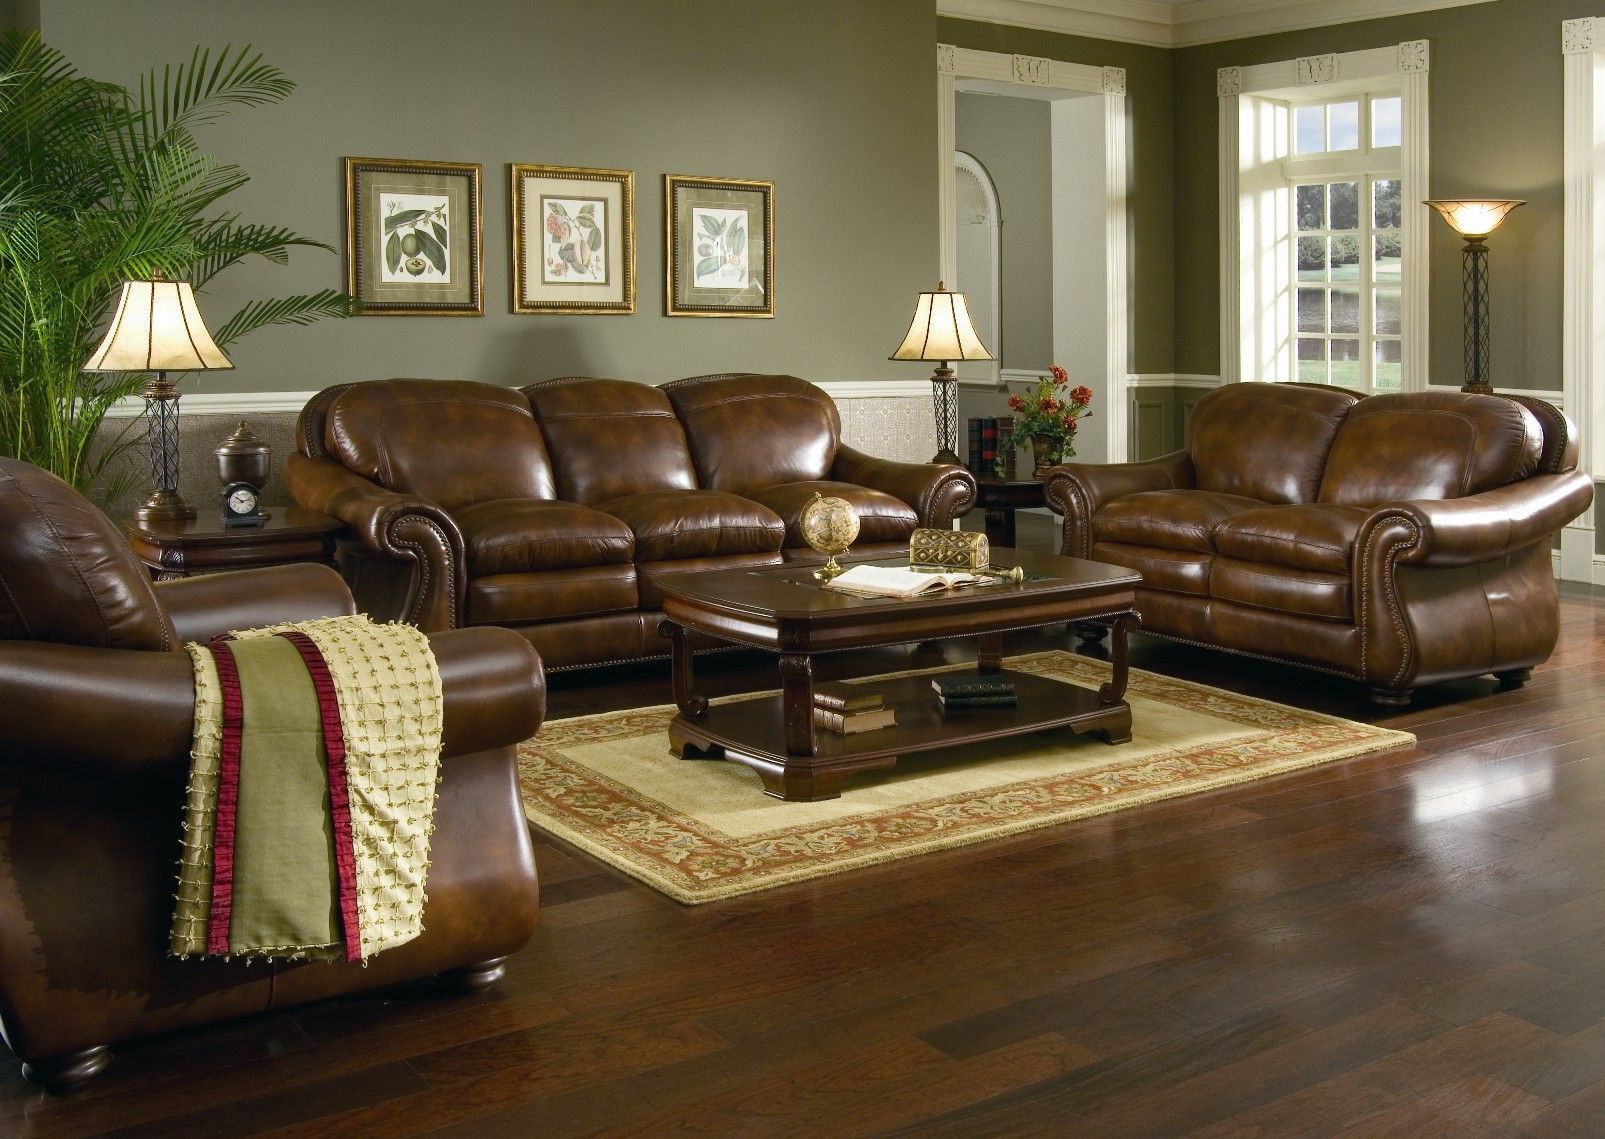 living room wooden furniture photos. brown leather sofa set for living room with dark hardwood floors furniture prepare wooden photos